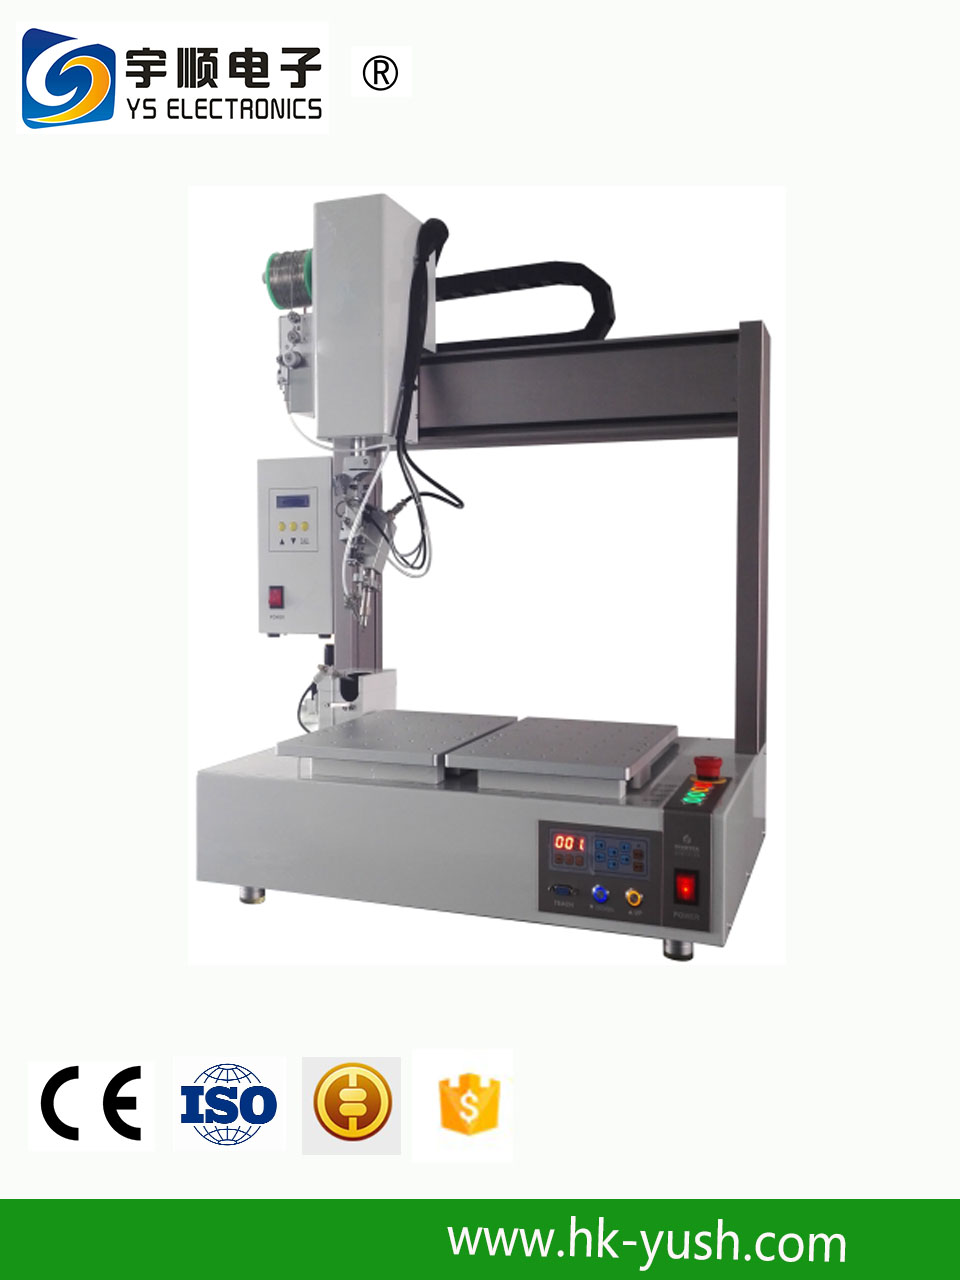 Automatic soldering Equipment